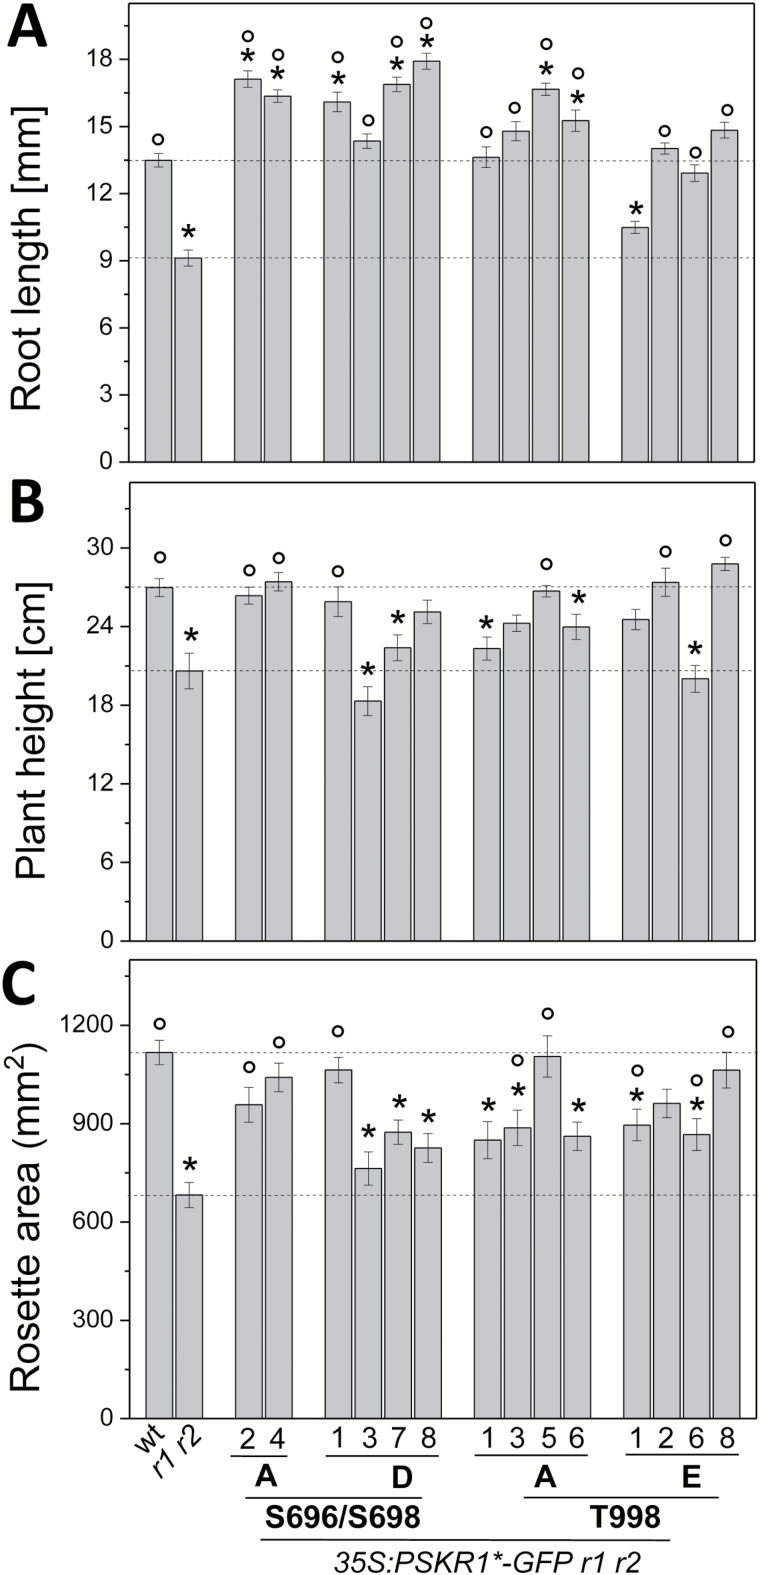 Phosphorylations at the JM domain and CT differentially affect PSKR1 receptor activity in roots and shoots. Full-length PSKR1 receptor isoforms as indicated were expressed in the pskr1-3 pskr2-1 receptor null background, with different numbers indicating independent lines. (A) Length of main root of 5-d-old seedlings grown under sterile conditions ( n =35–94). (B) Plant height of 6-week-old soil-grown plants ( n =18–27). (C) Projected rosette area of 4-week-old soil-grown plants ( n =19–27). Values are means from three independent biological experiments. Significant differences compared to the wild-type (wt) are indicated by * and significant differences compared to pskr1-3 pskr2-1 ( r1 r2 ) are indicated by ° (Kruskal–Wallis with Dunn's test as post-hoc ; P